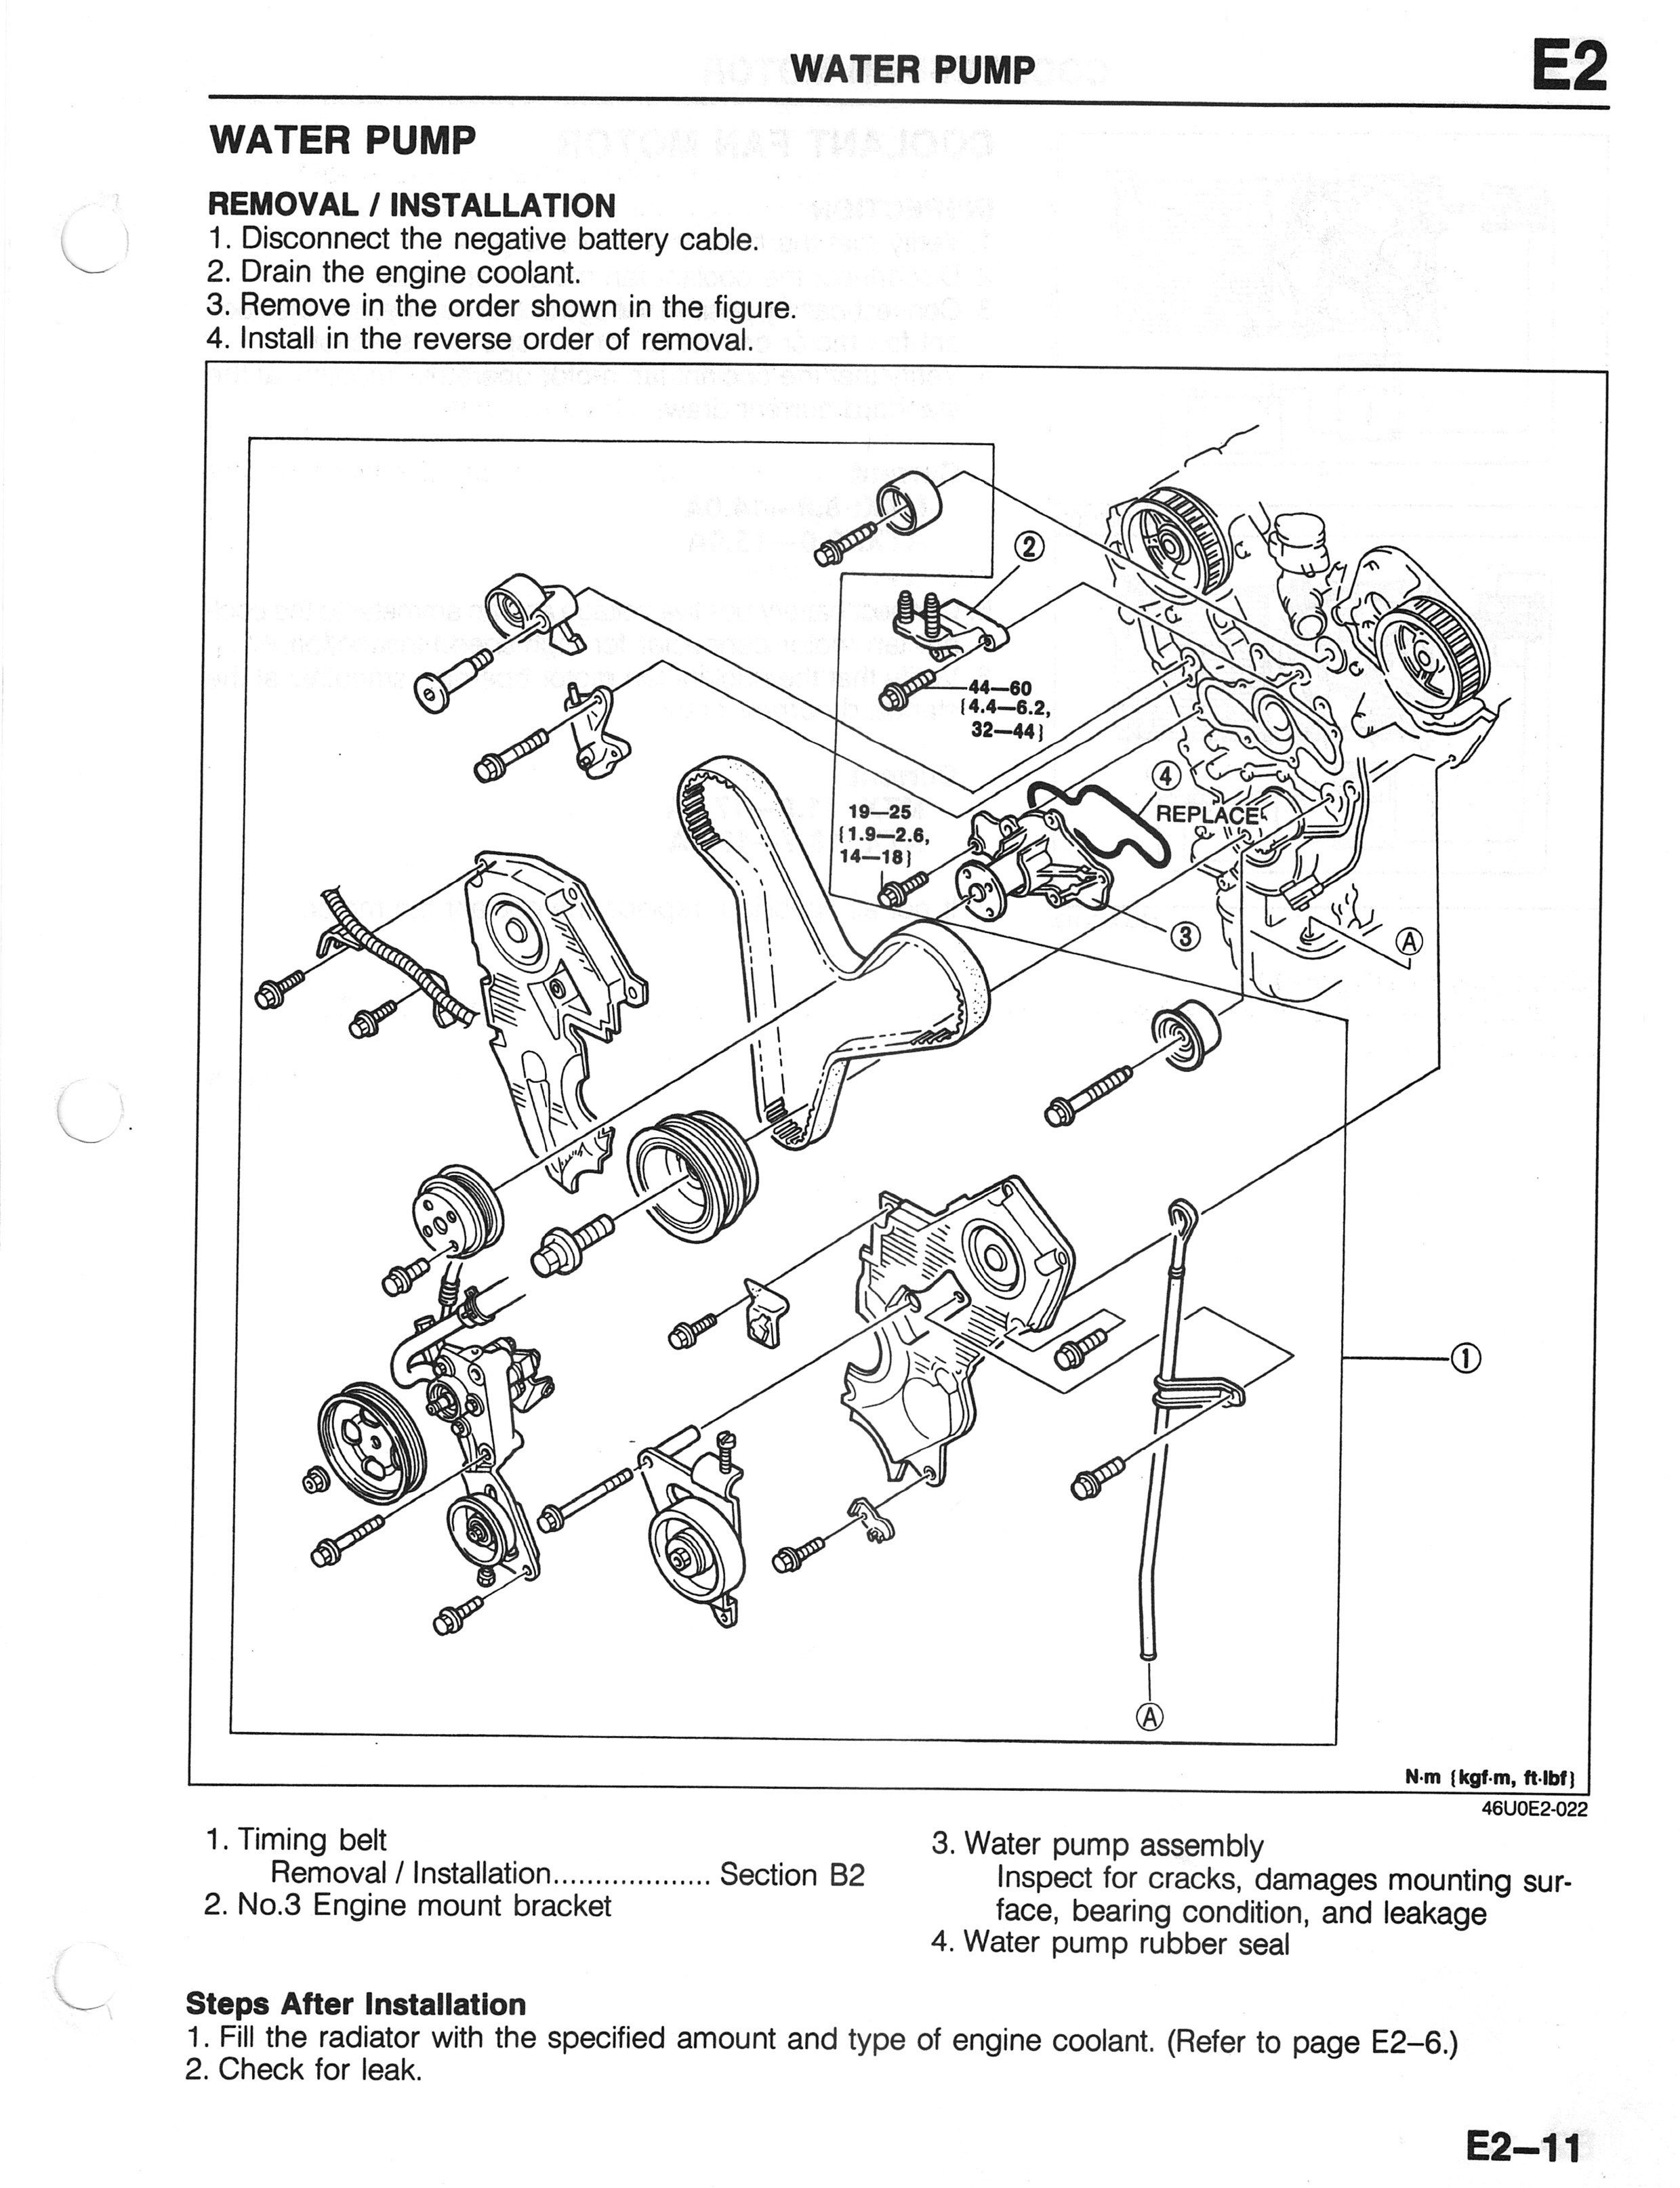 E Horn Diagram Data Wiring Diagrams 2003 Ford Windstar